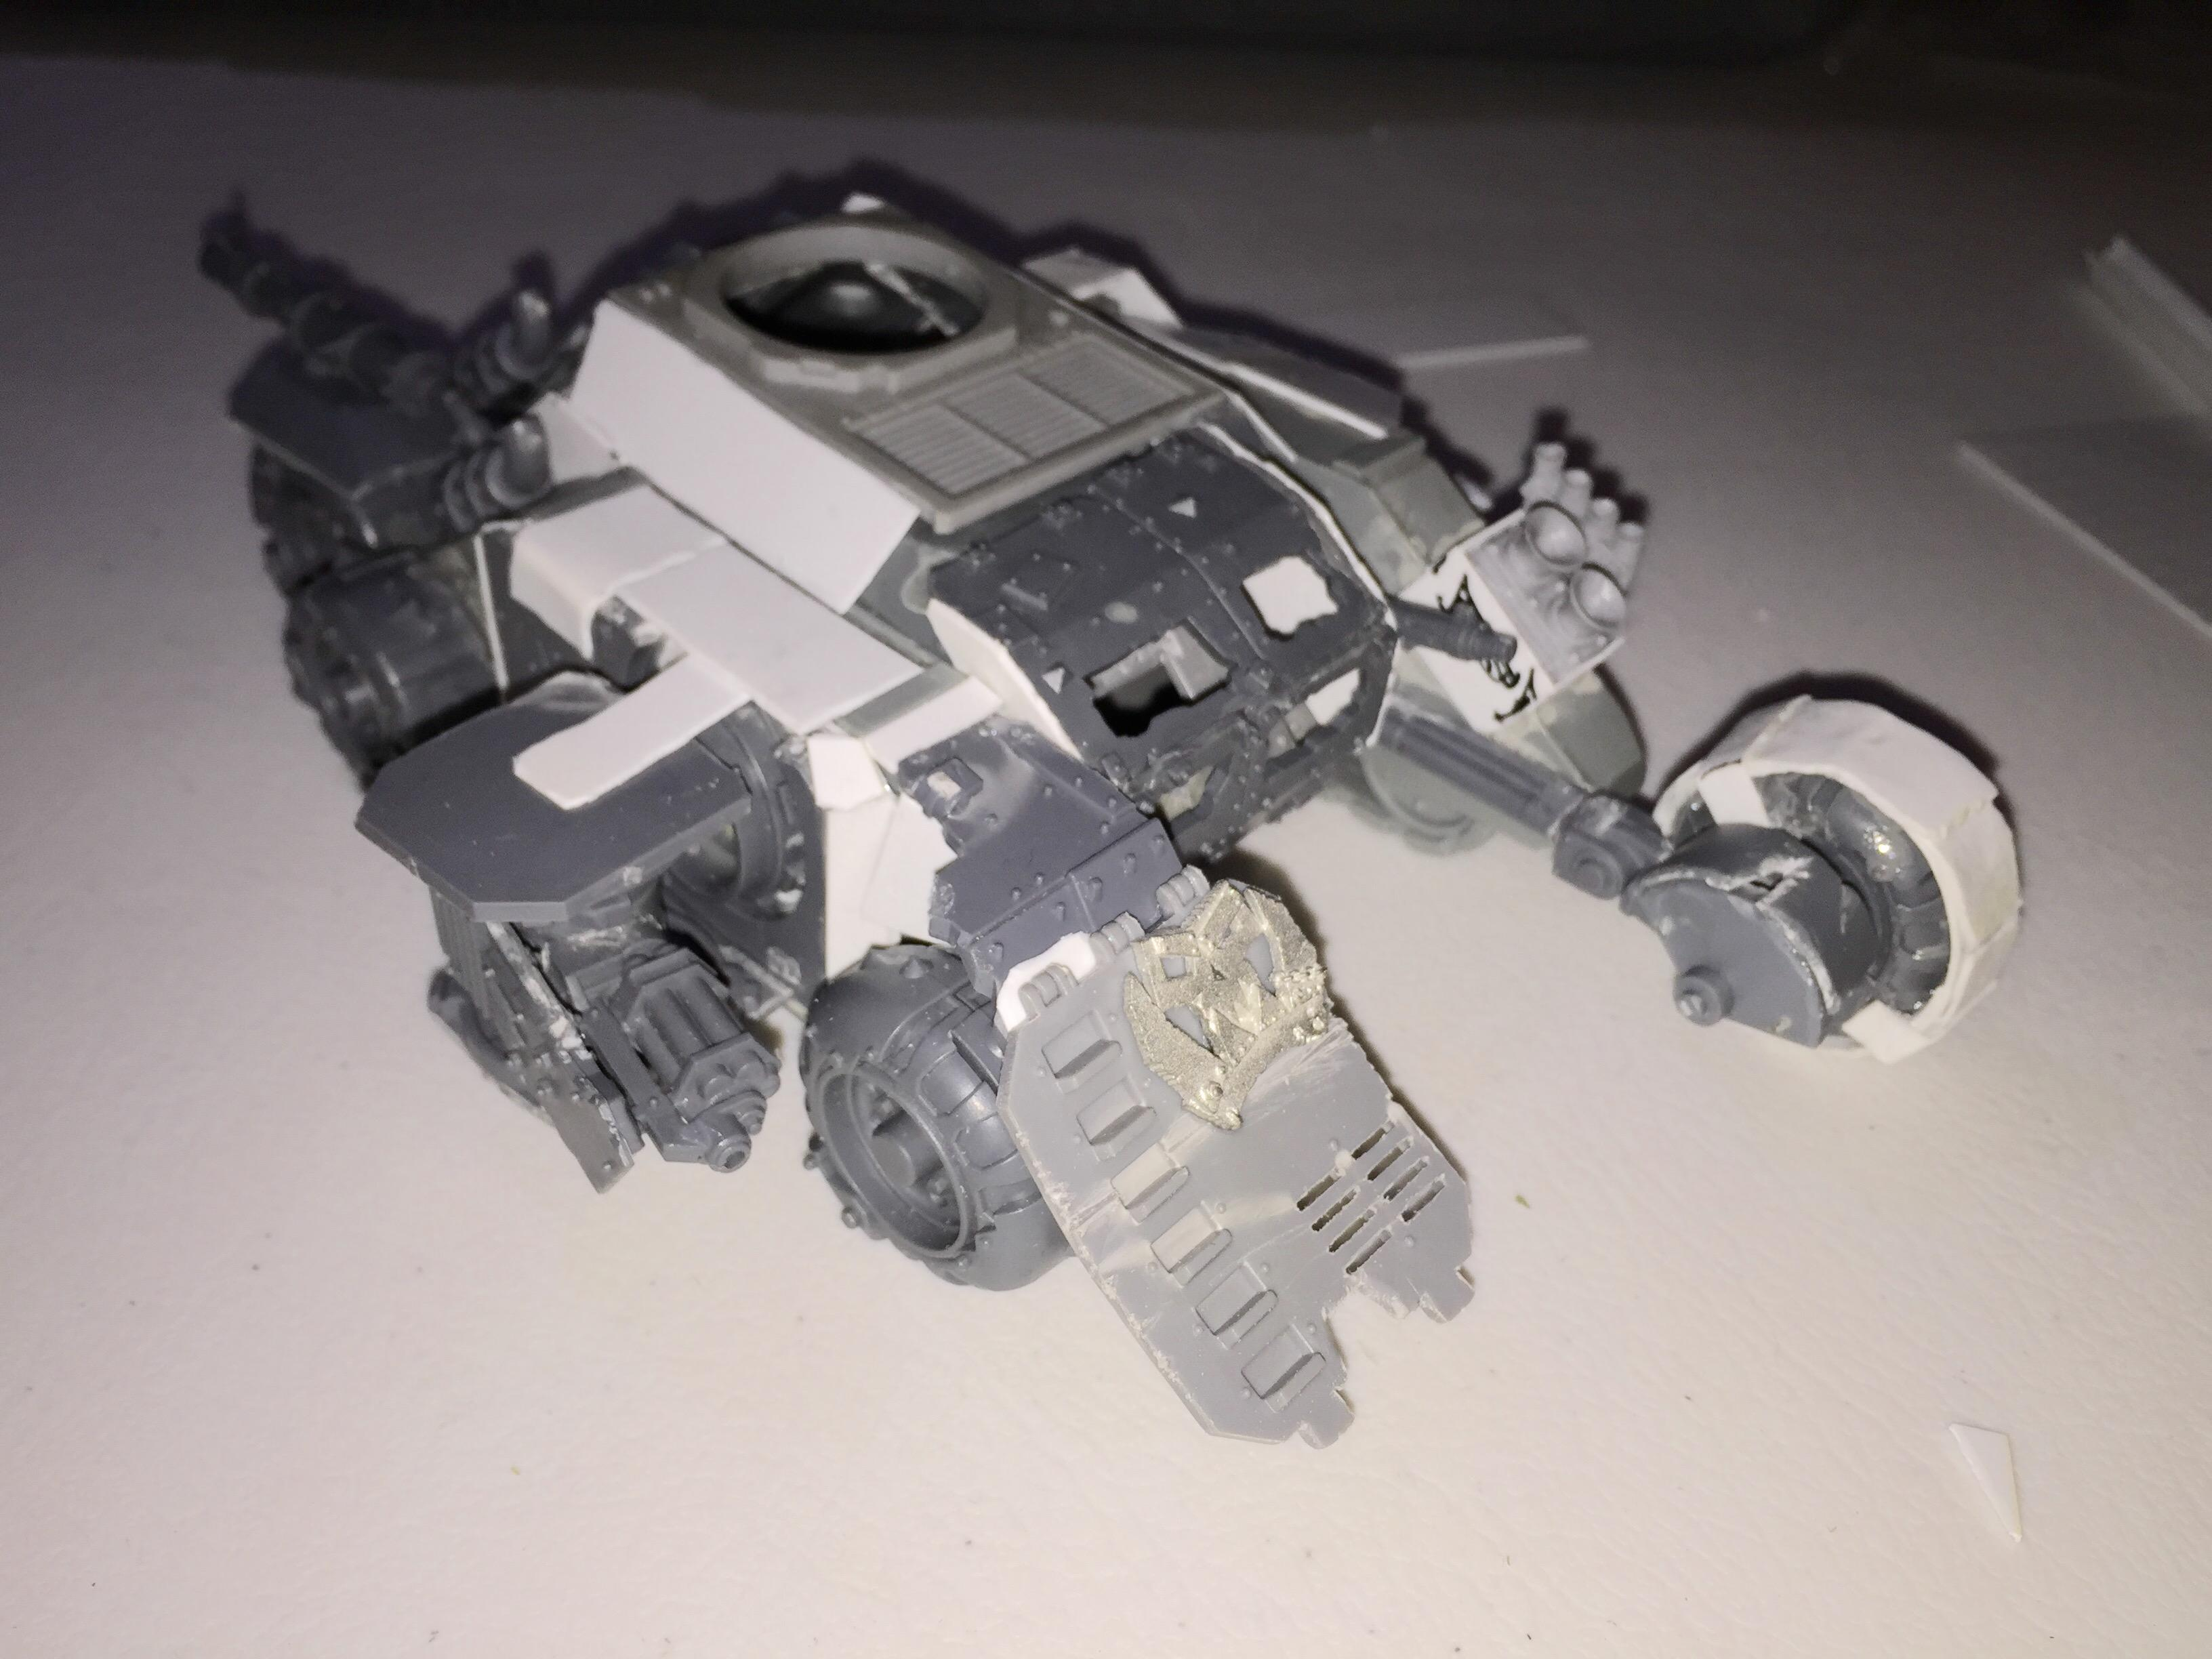 With the Turret off